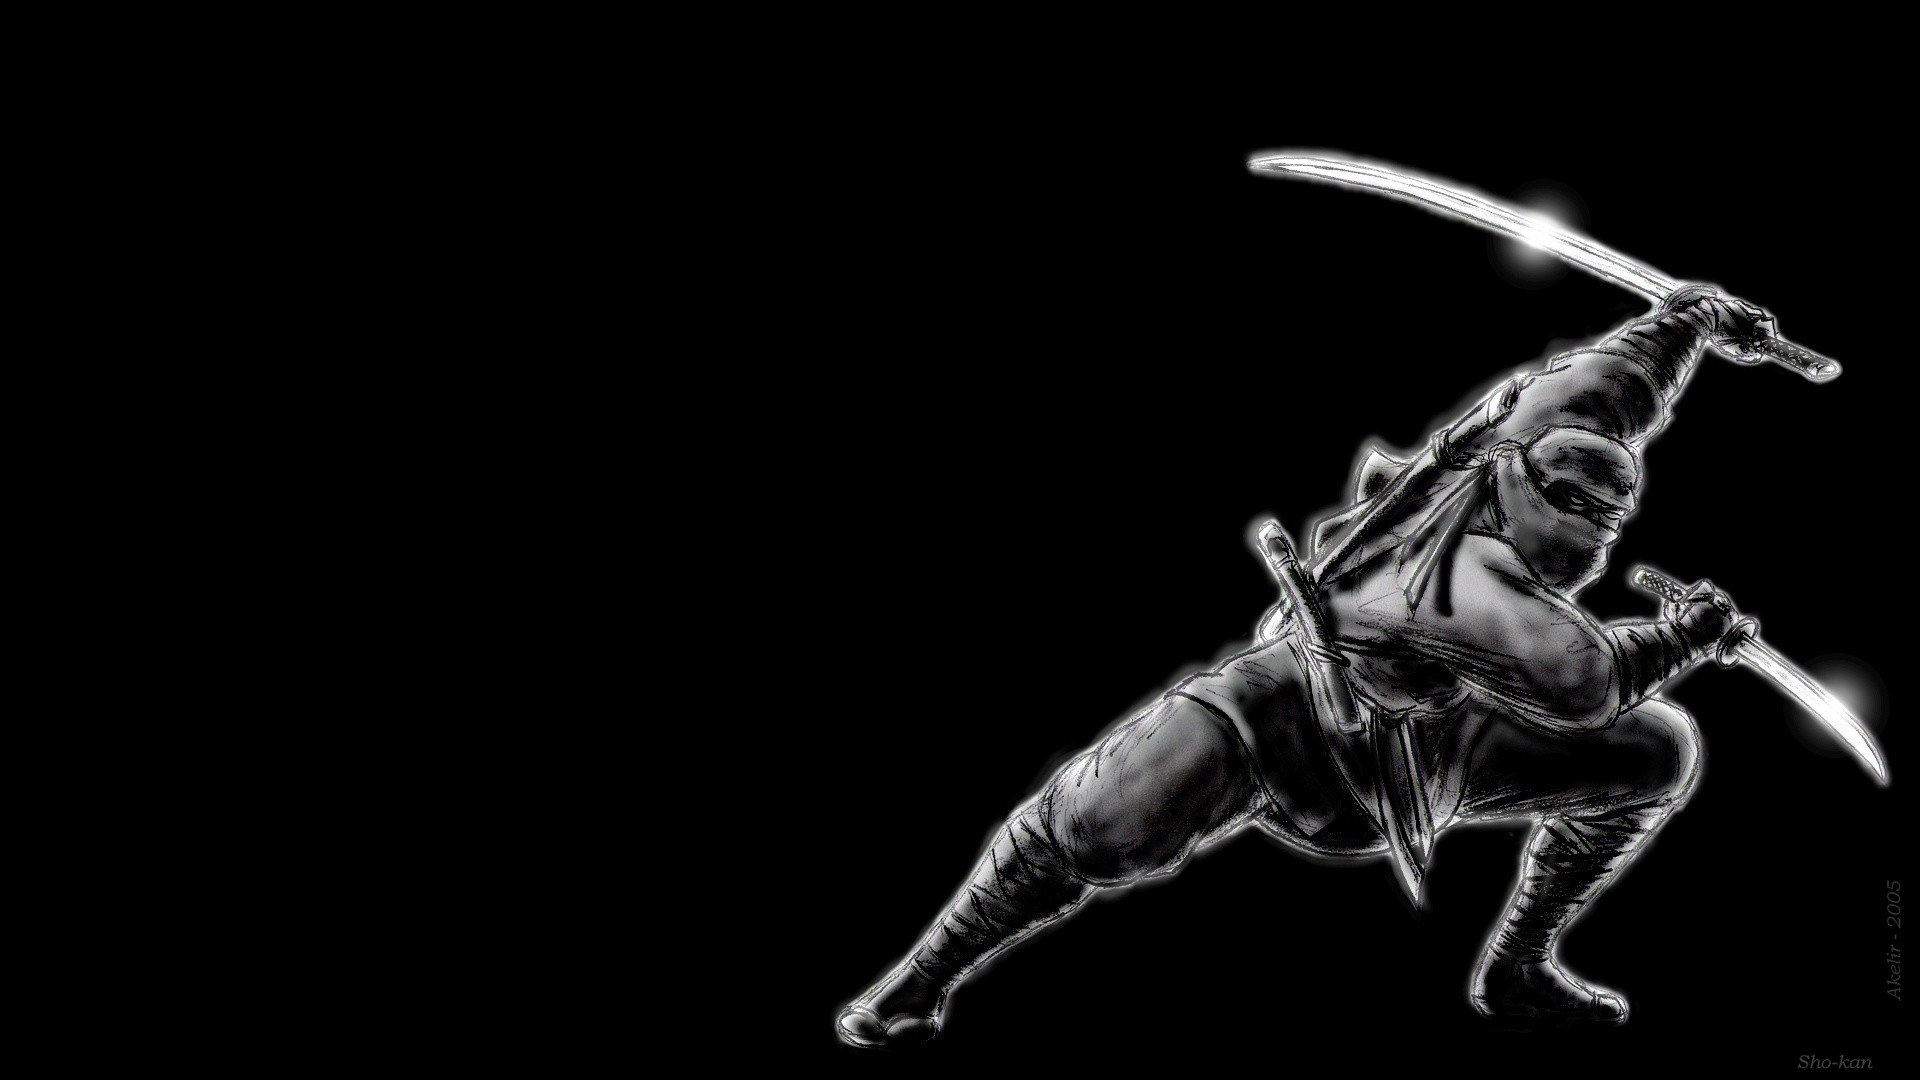 Afro Samurai Wallpapers Hd 71 Background Pictures